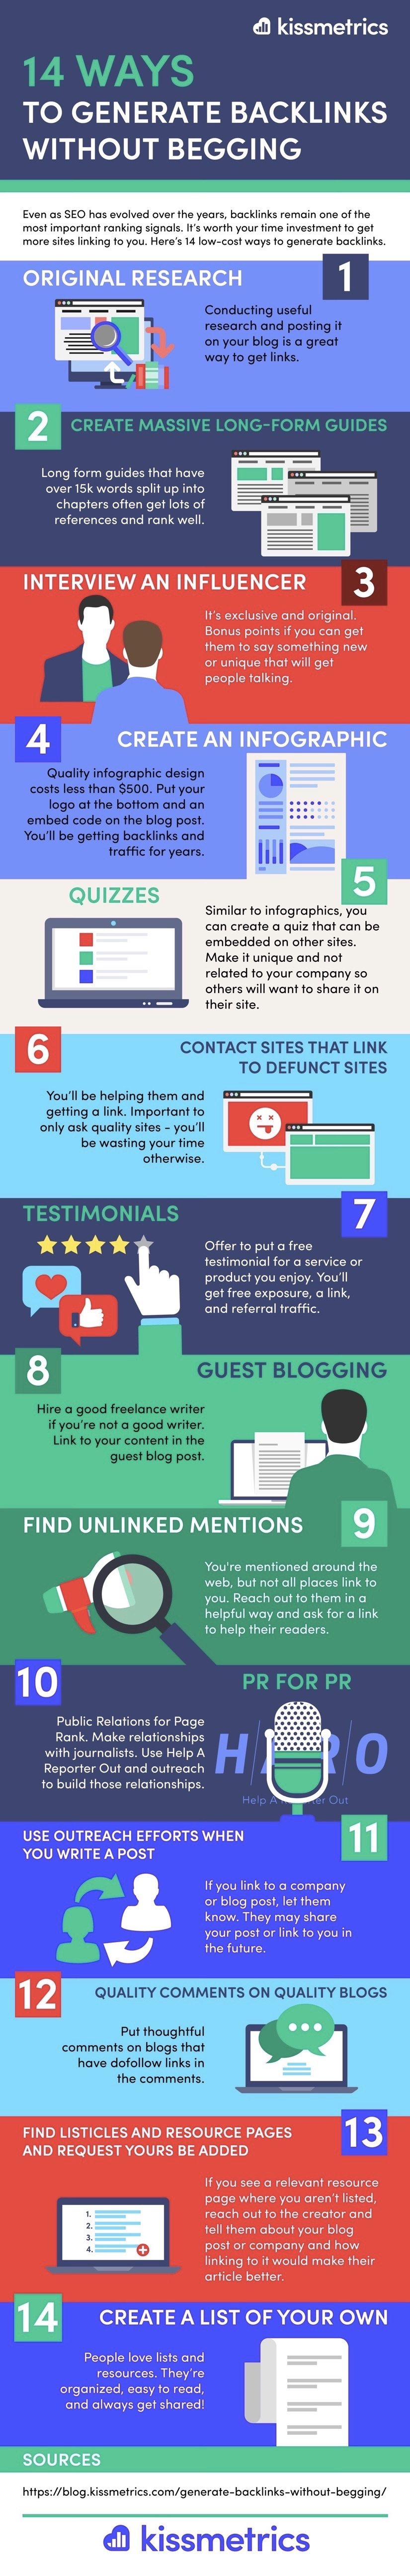 14 Ways to Earn Backlinks Without Begging [Infographic] | Social Media Today